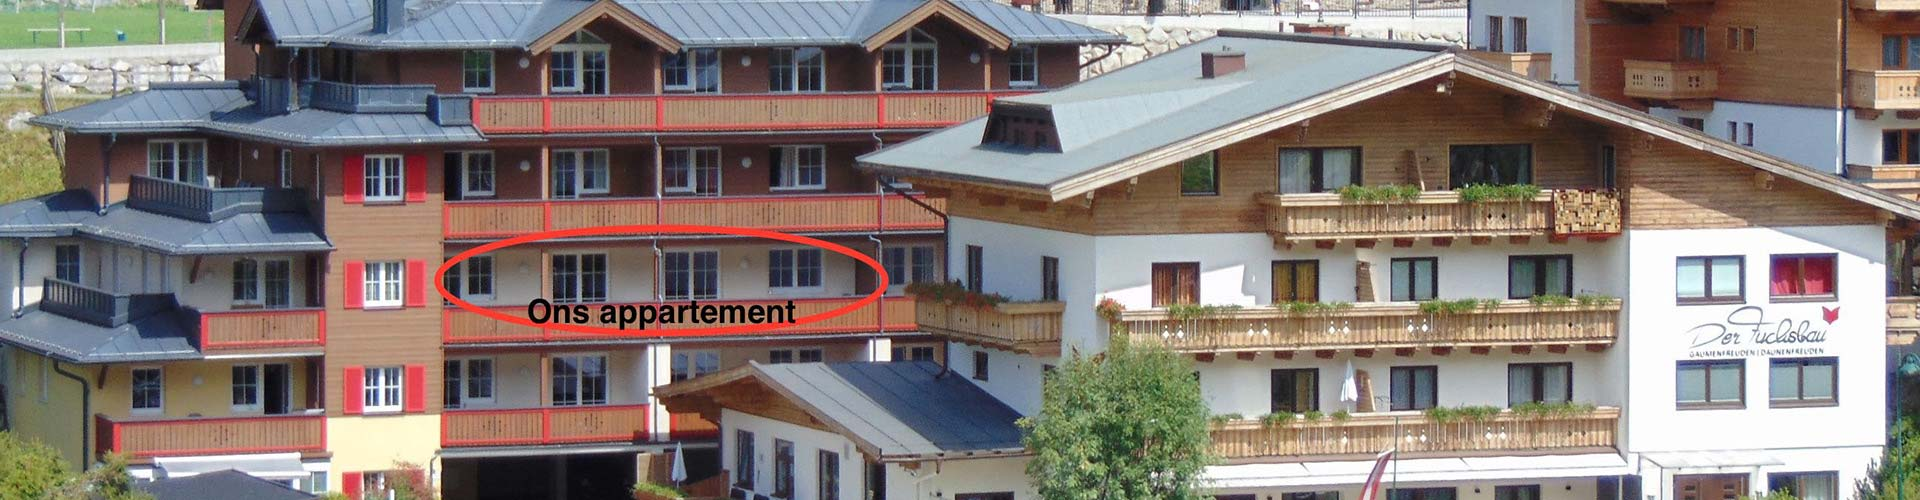 Appartement Iglsberg, Saalbach - Joker Card